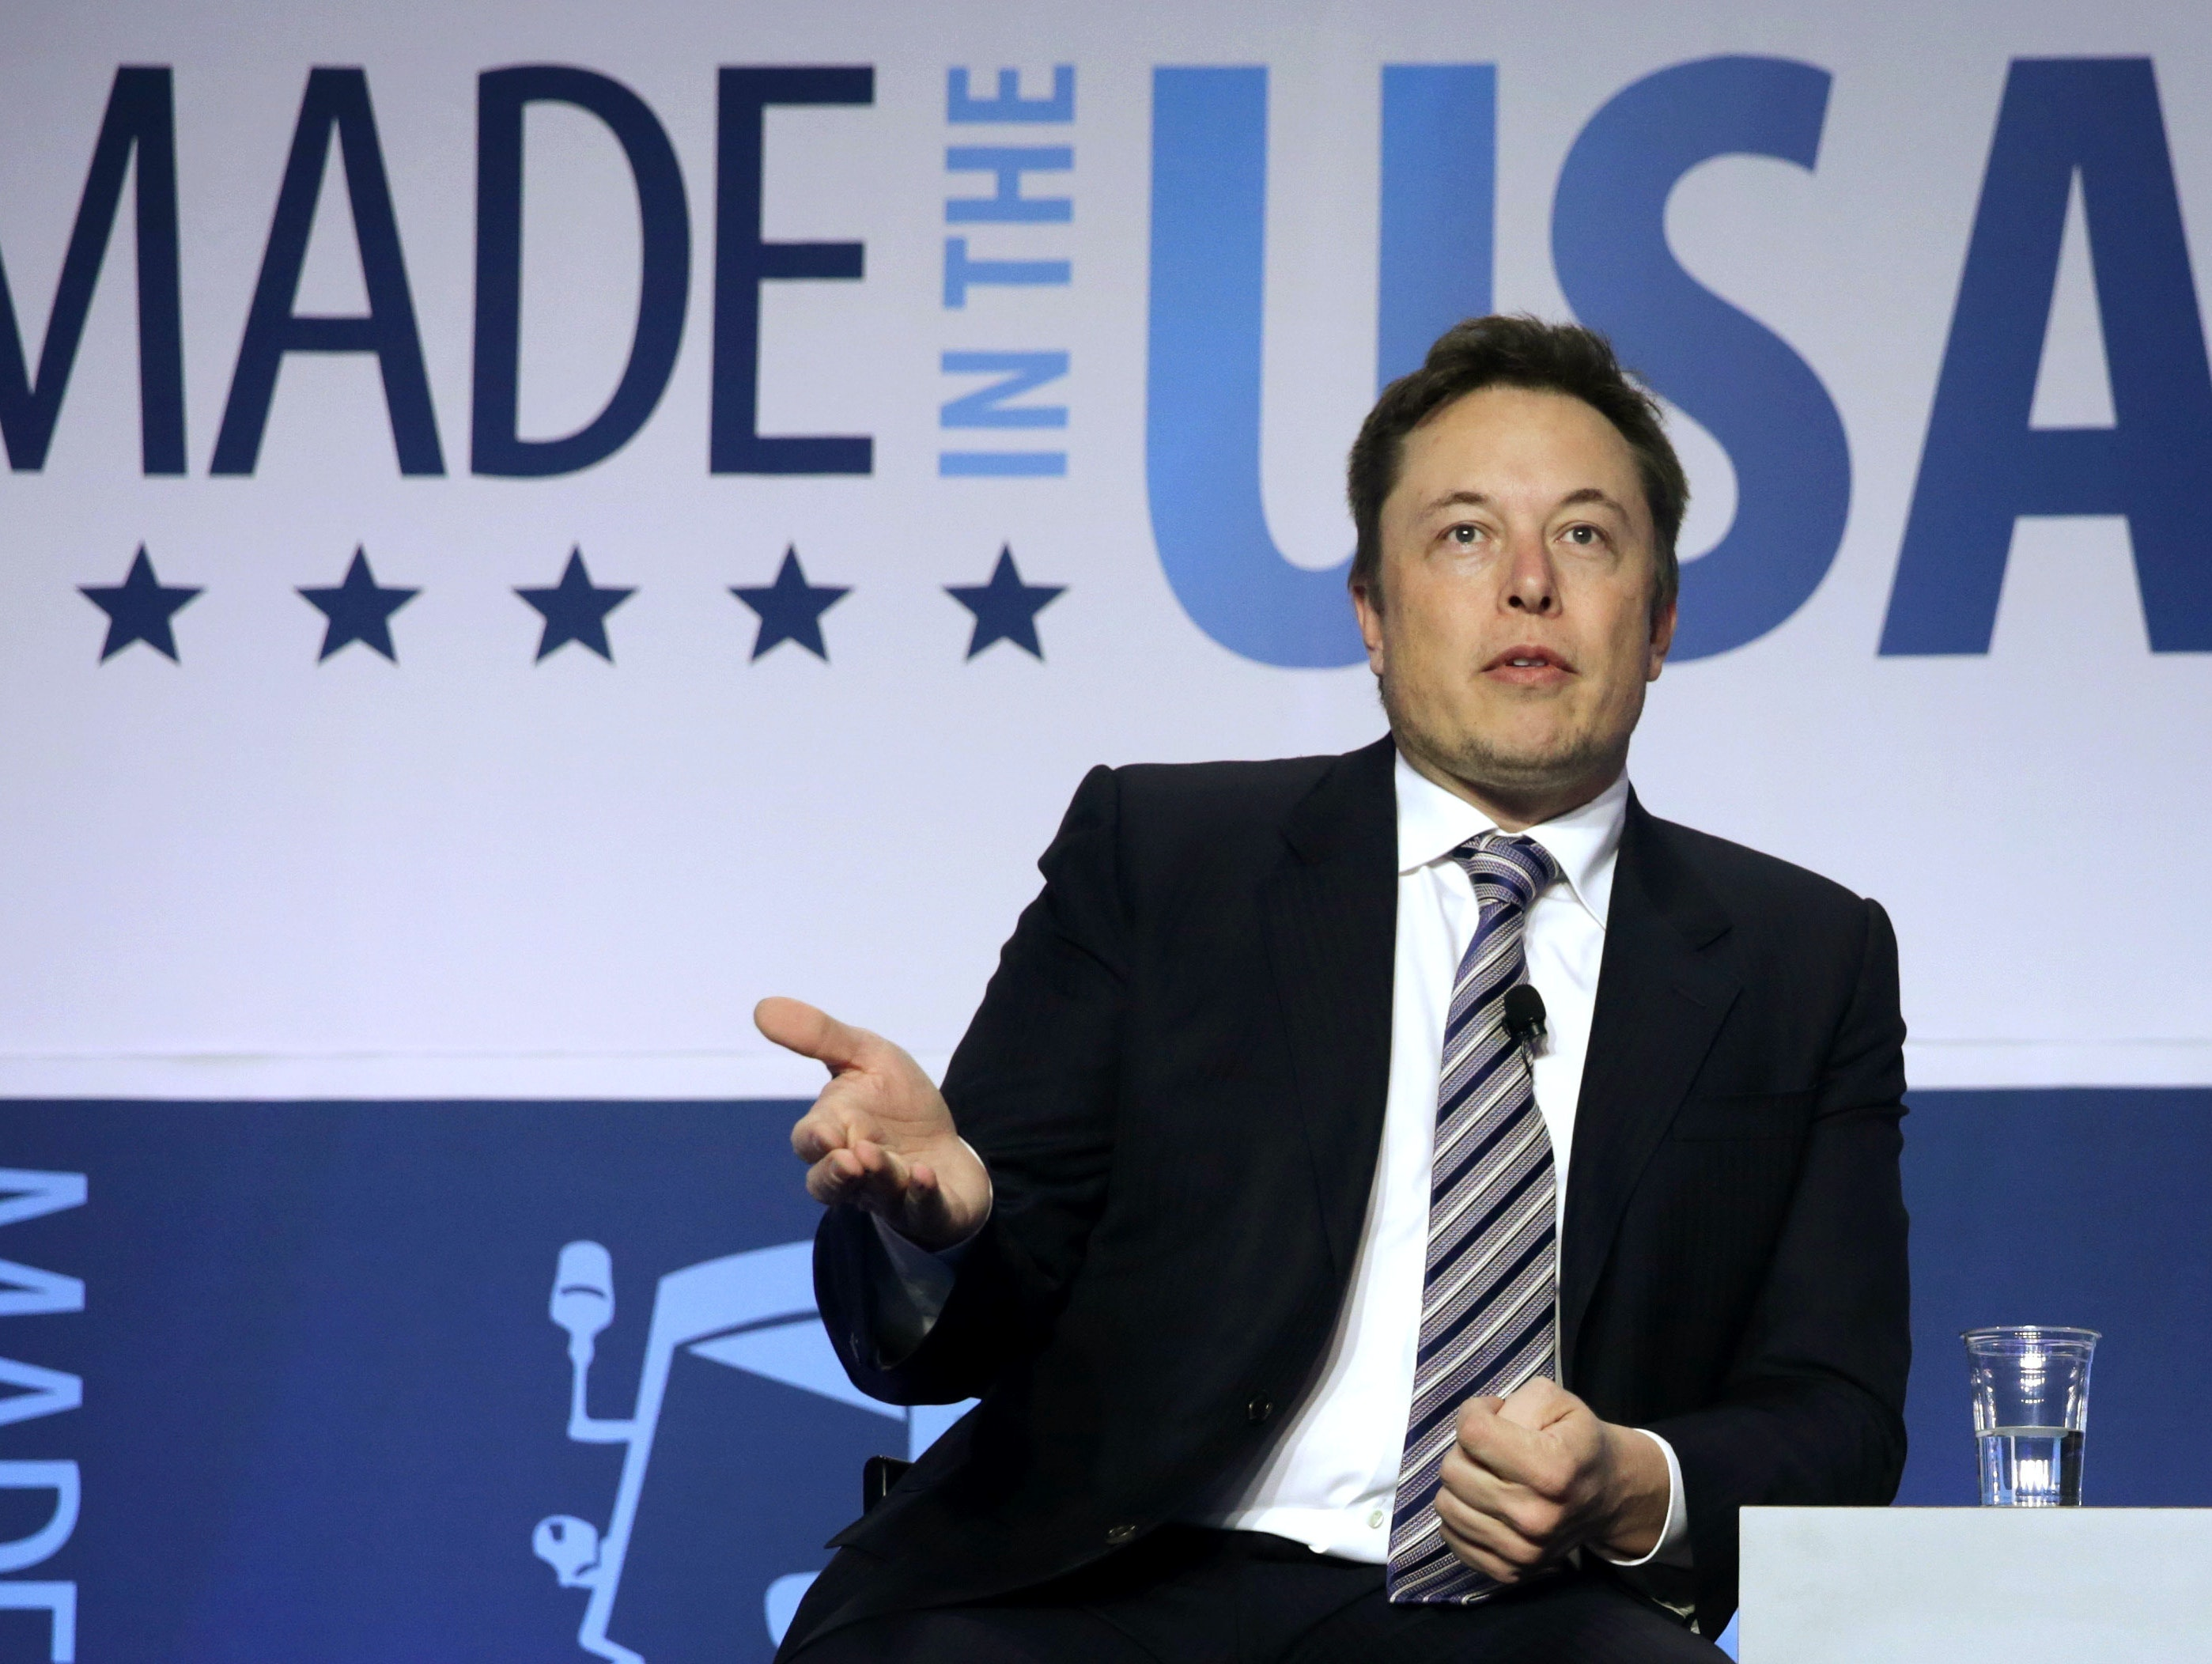 CEO and chief designer of SpaceX Elon Musk participates in a discussion during the 2014 annual conference of the Export-Import Bank (EXIM) April 25, 2014 in Washington, DC.